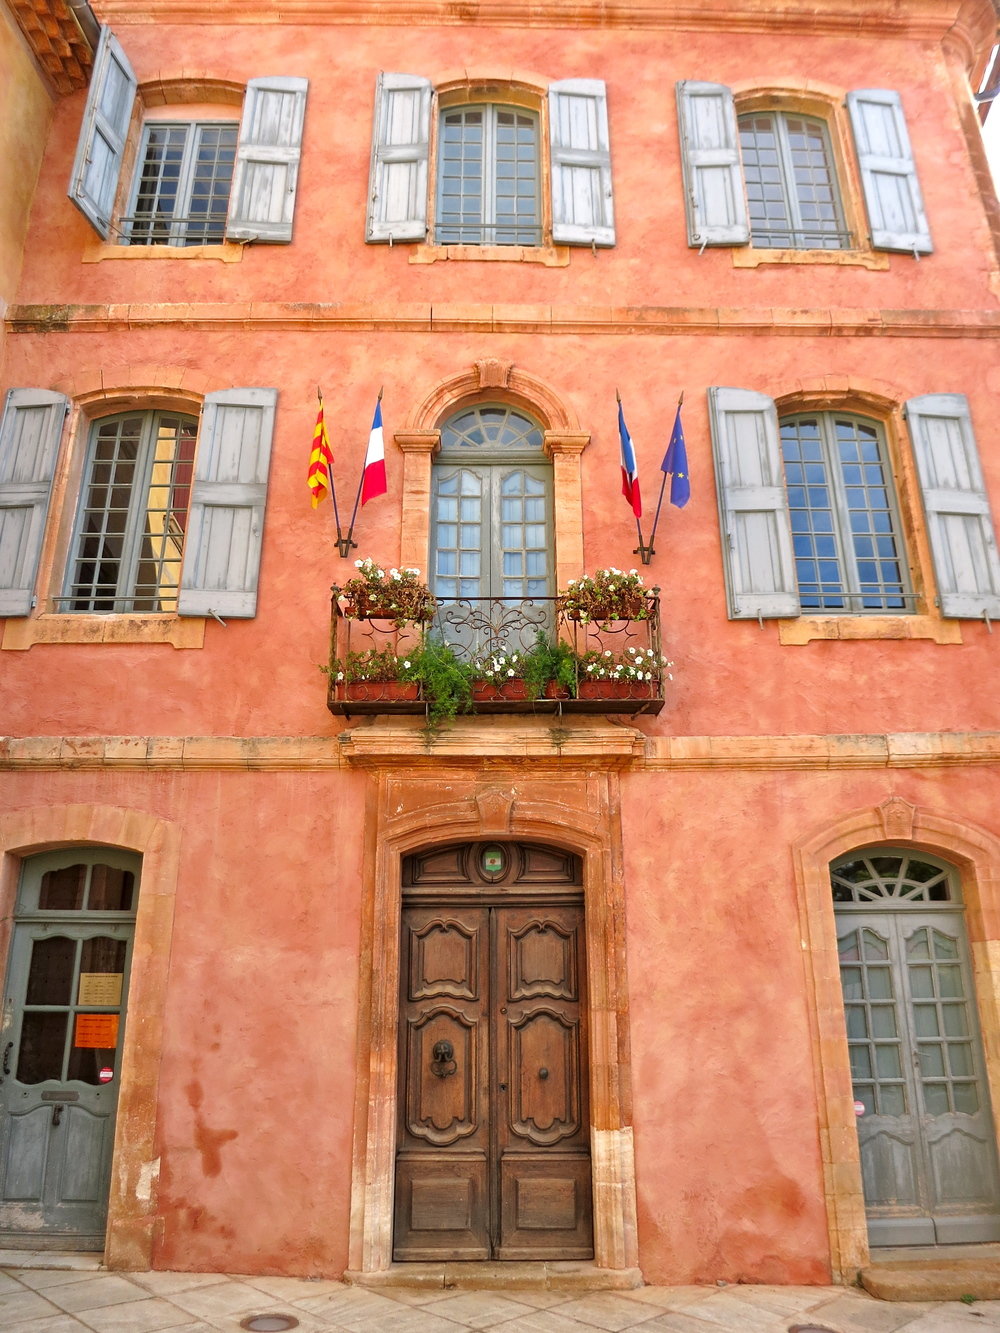 The Maison Commune de Roussillon. Could there be a cuter town hall in all the world? No. © 2014 Gail Jessen